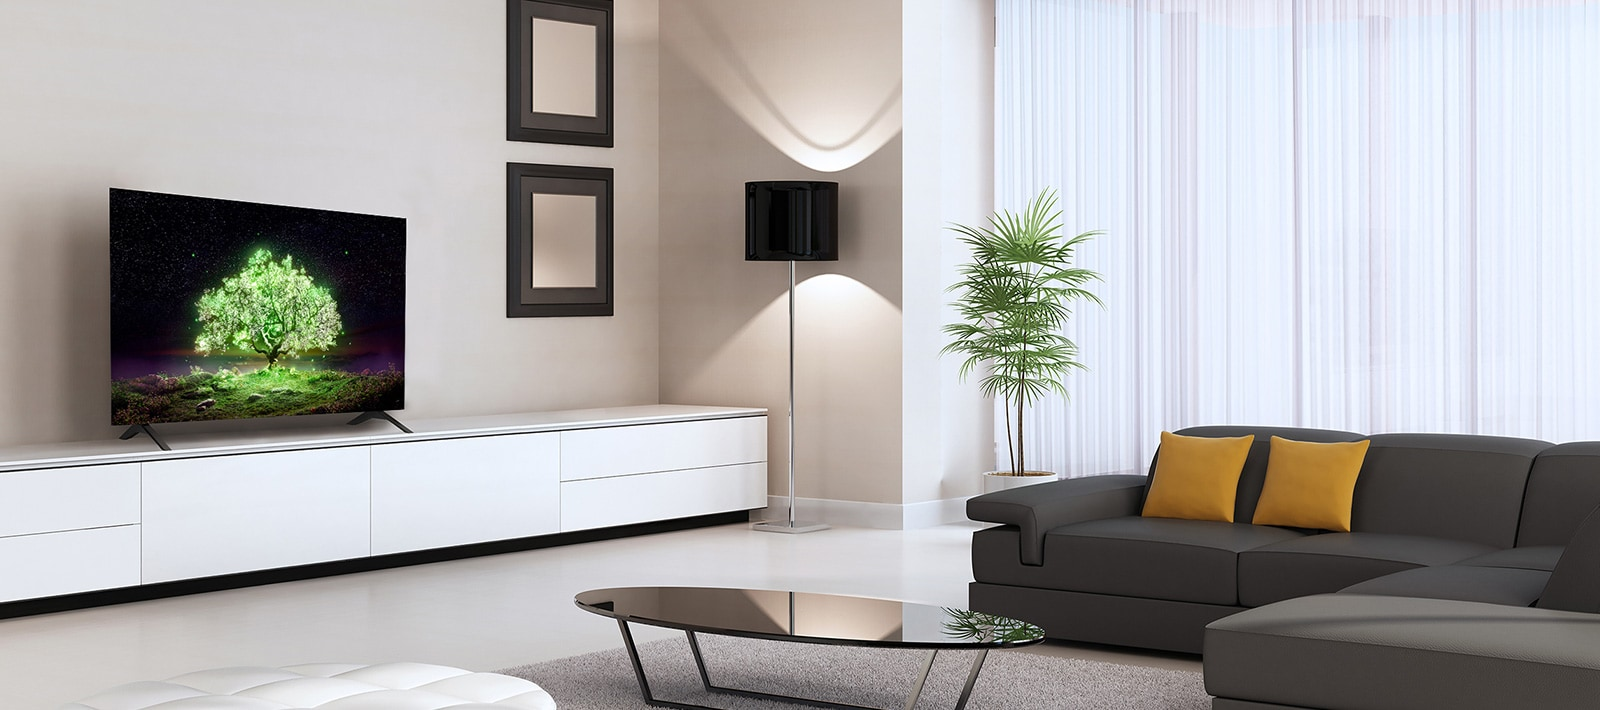 An OLED A1 TV placed in a sensuous living room. On the TV, you can see an image of a brightly glowing green tree.